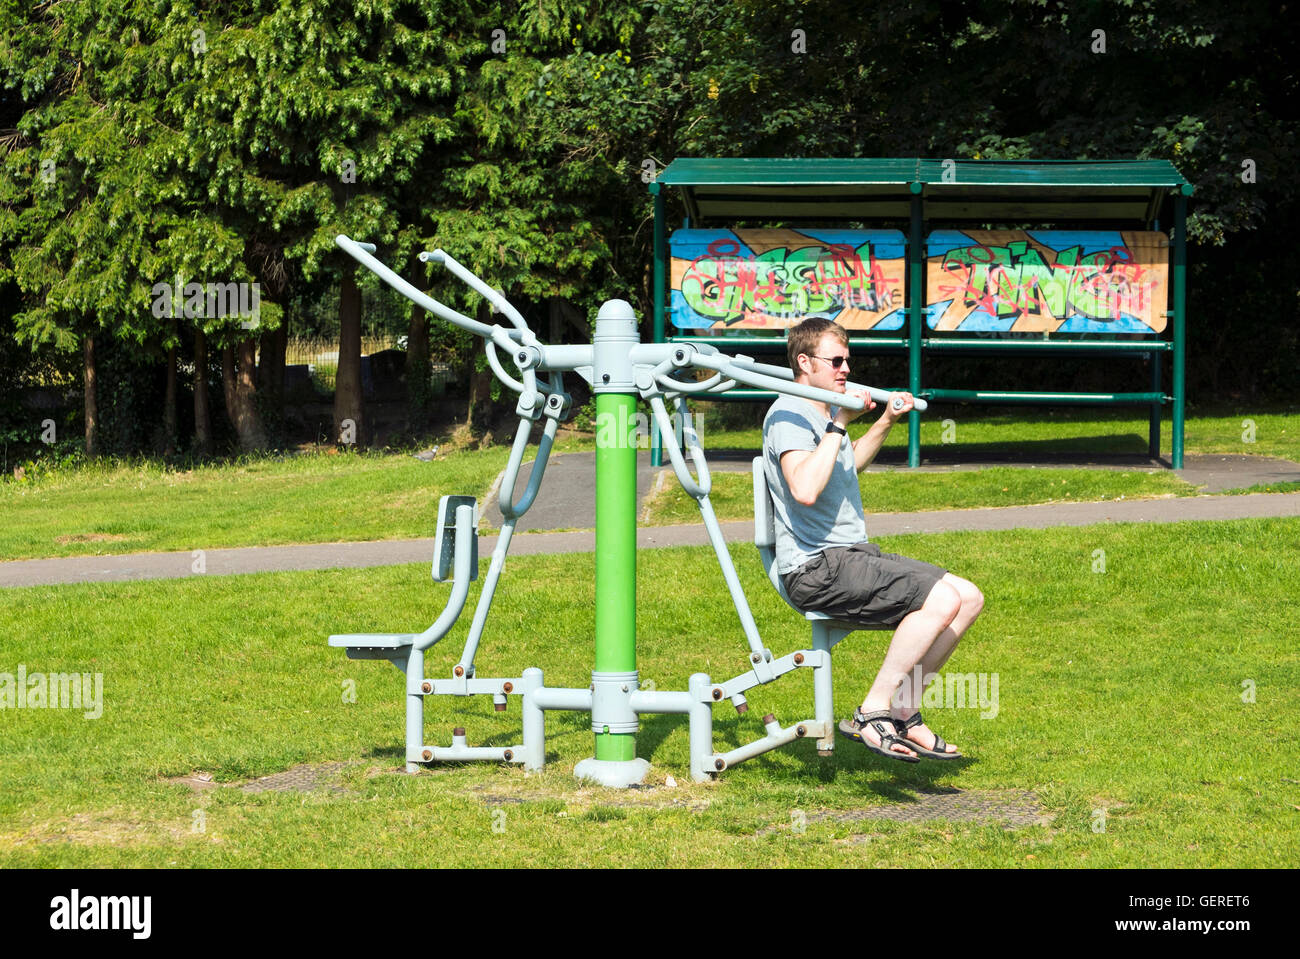 Man Using Outdoor Exercise Equipment In Kingswood Park